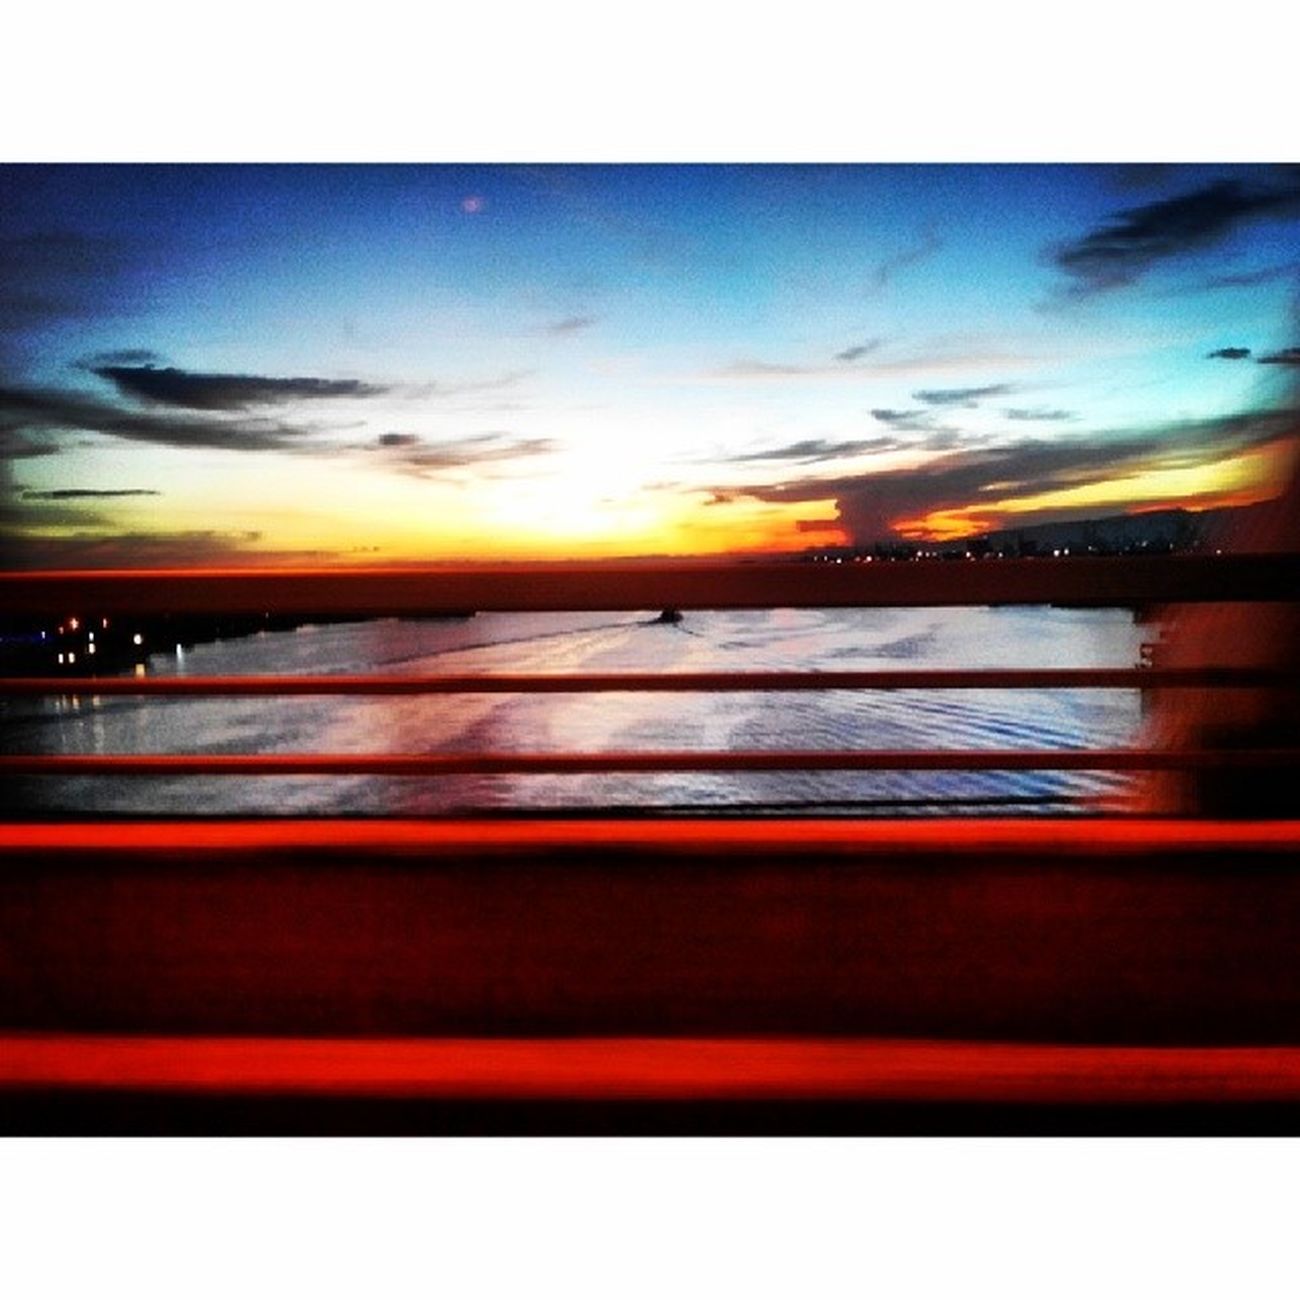 Mactan Bridge Sunset Sunset Mactan Bridge Mactanbridge beautiful nature mothernature heavenly soothing ocean sunday love life passion igers igersasia Philippines Cebu pinoy iglike iglove igdaily potd Lenovo photography pilipinasshoutout